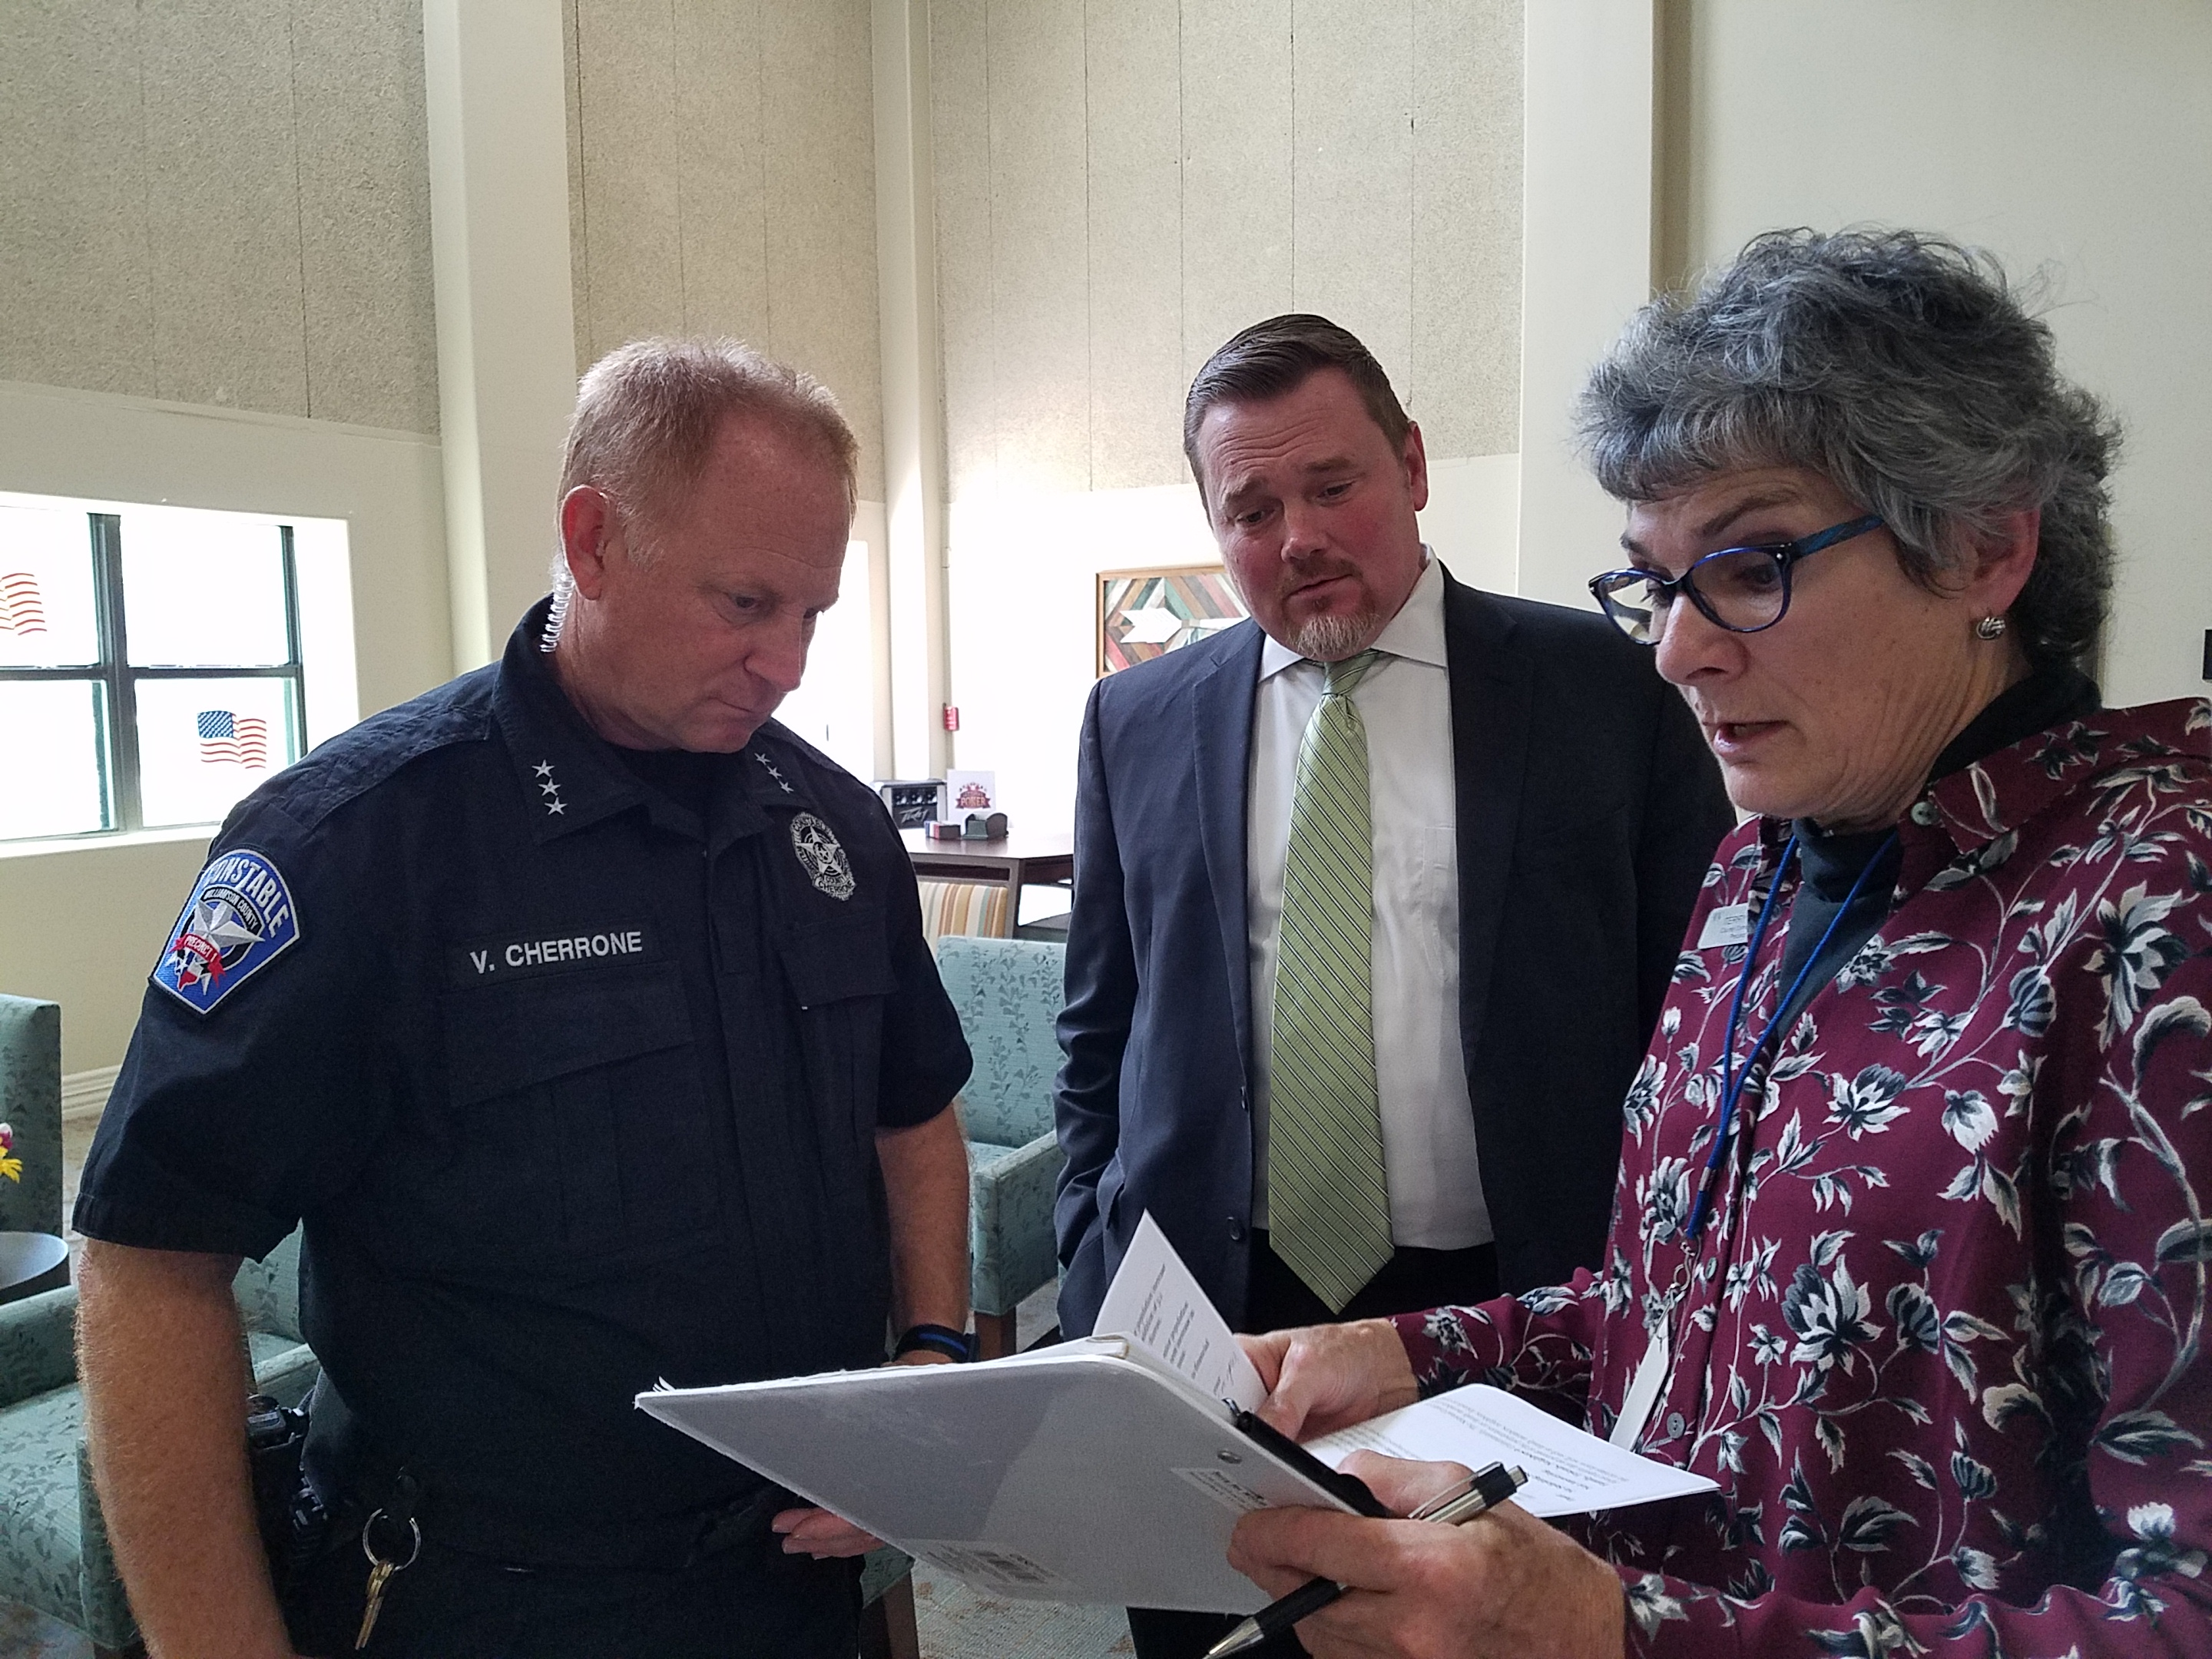 Commissioner Cook shares senior fraud information with Precinct 1 Constable Vinnie Cherrone and Wilco County Attorney Dee Hobbs.